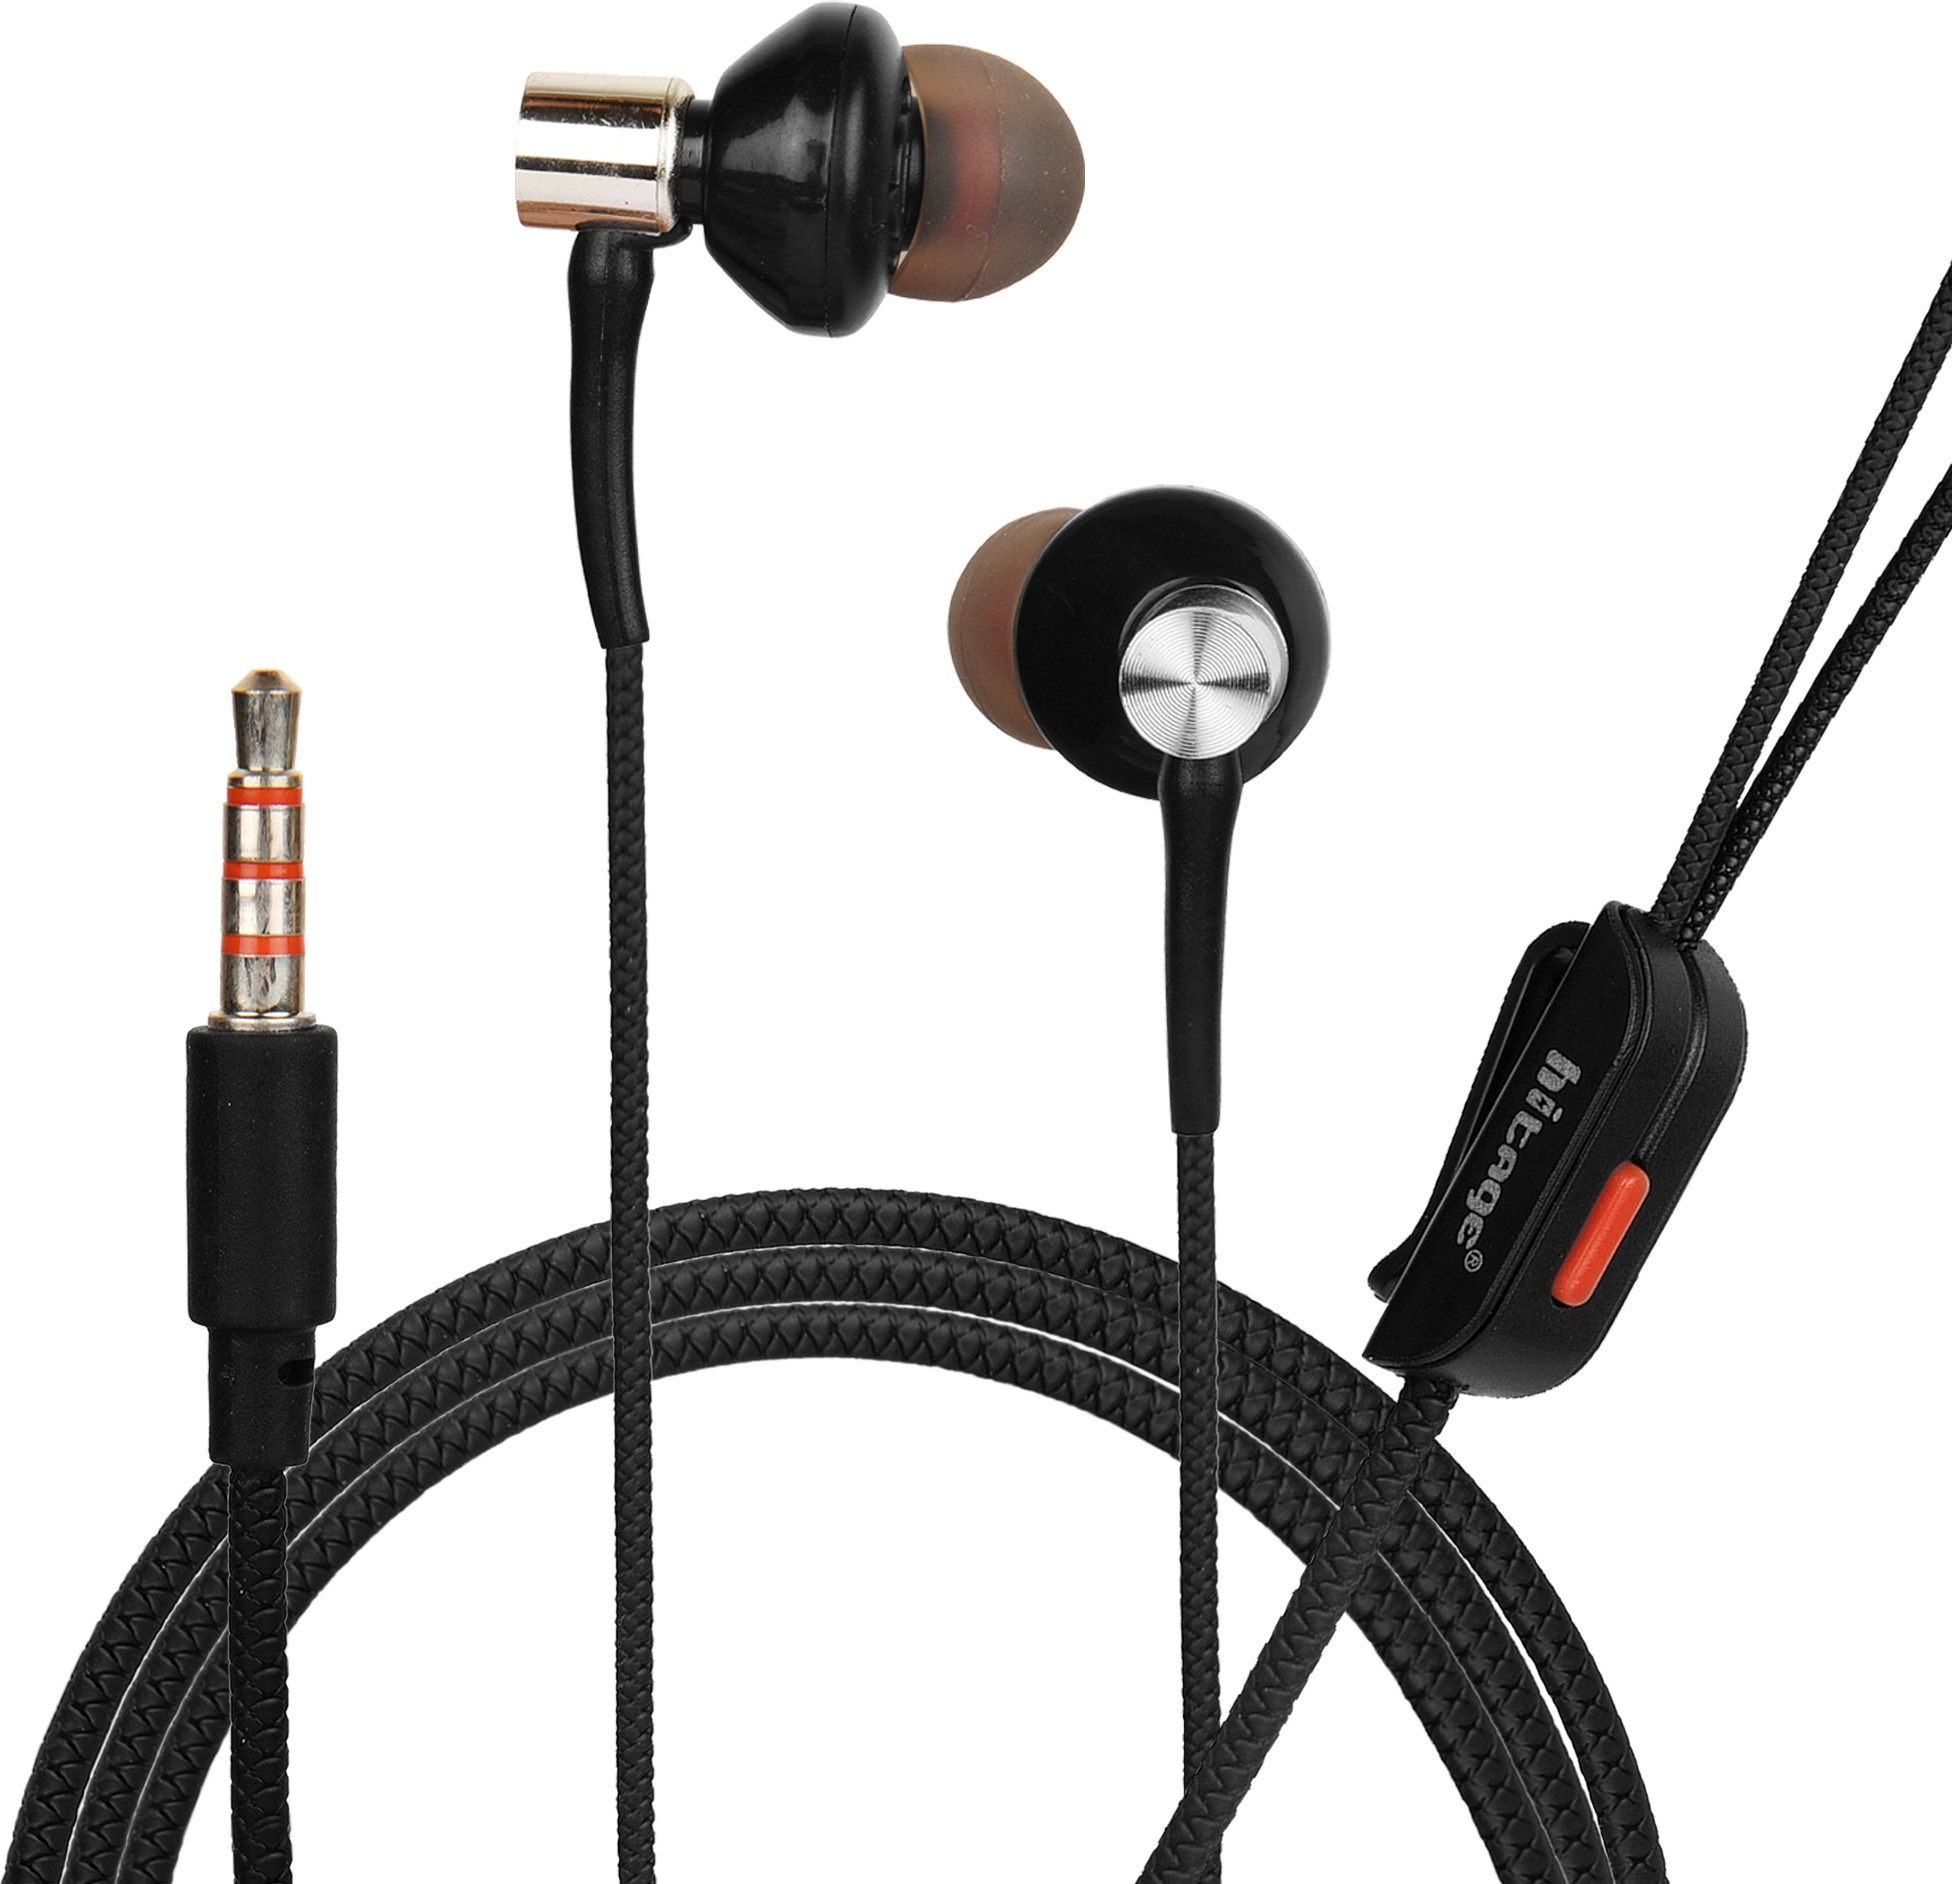 Hitage in-Ear Earphone Wired Headset with HD Voice Mic (Black) Wired Headset (Black, In the Ear)